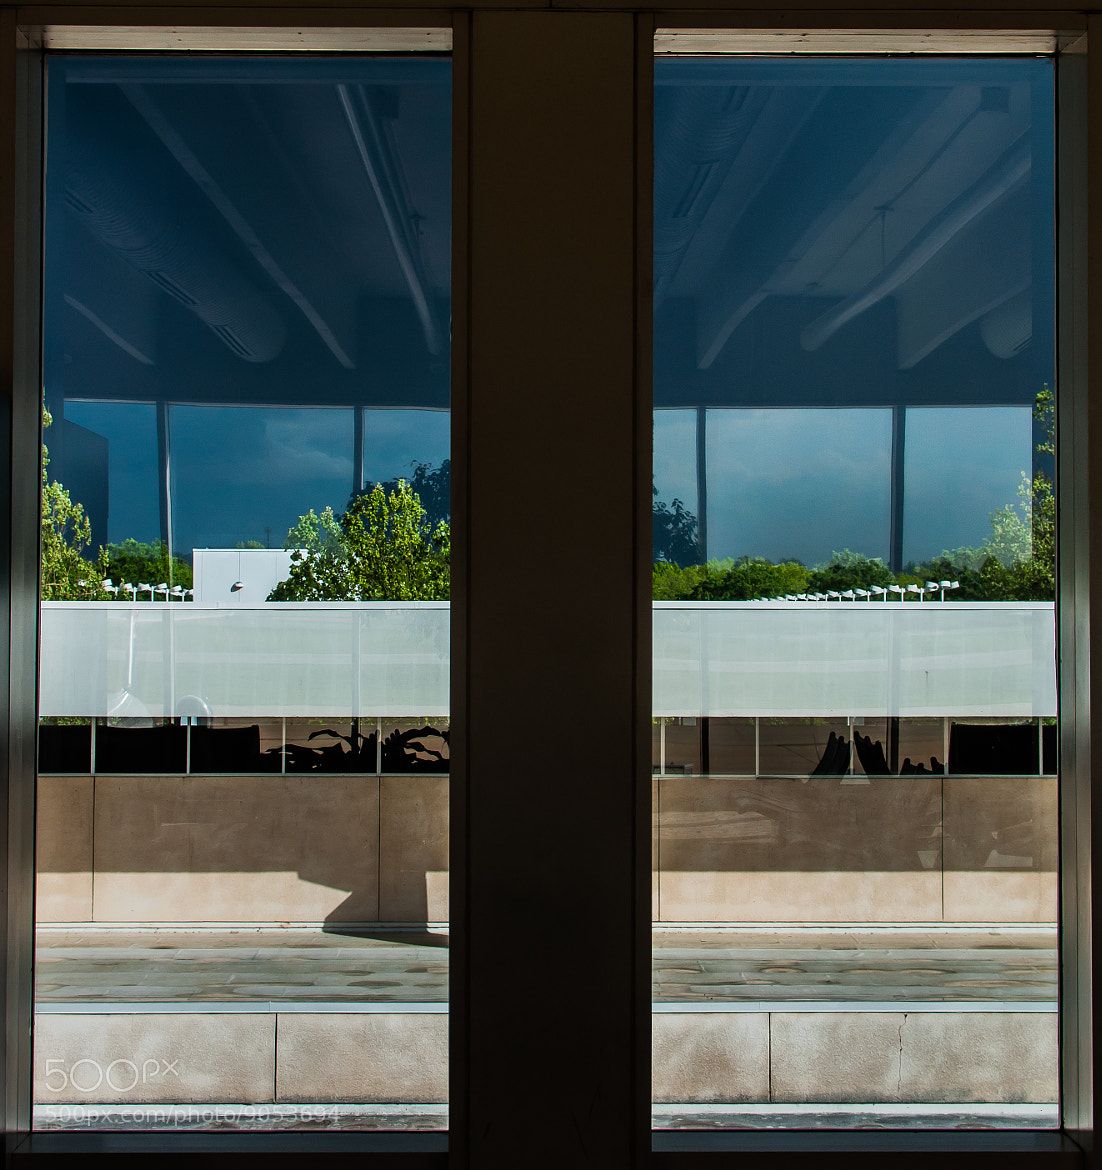 Photograph Airport Window by Kurt Nelson on 500px